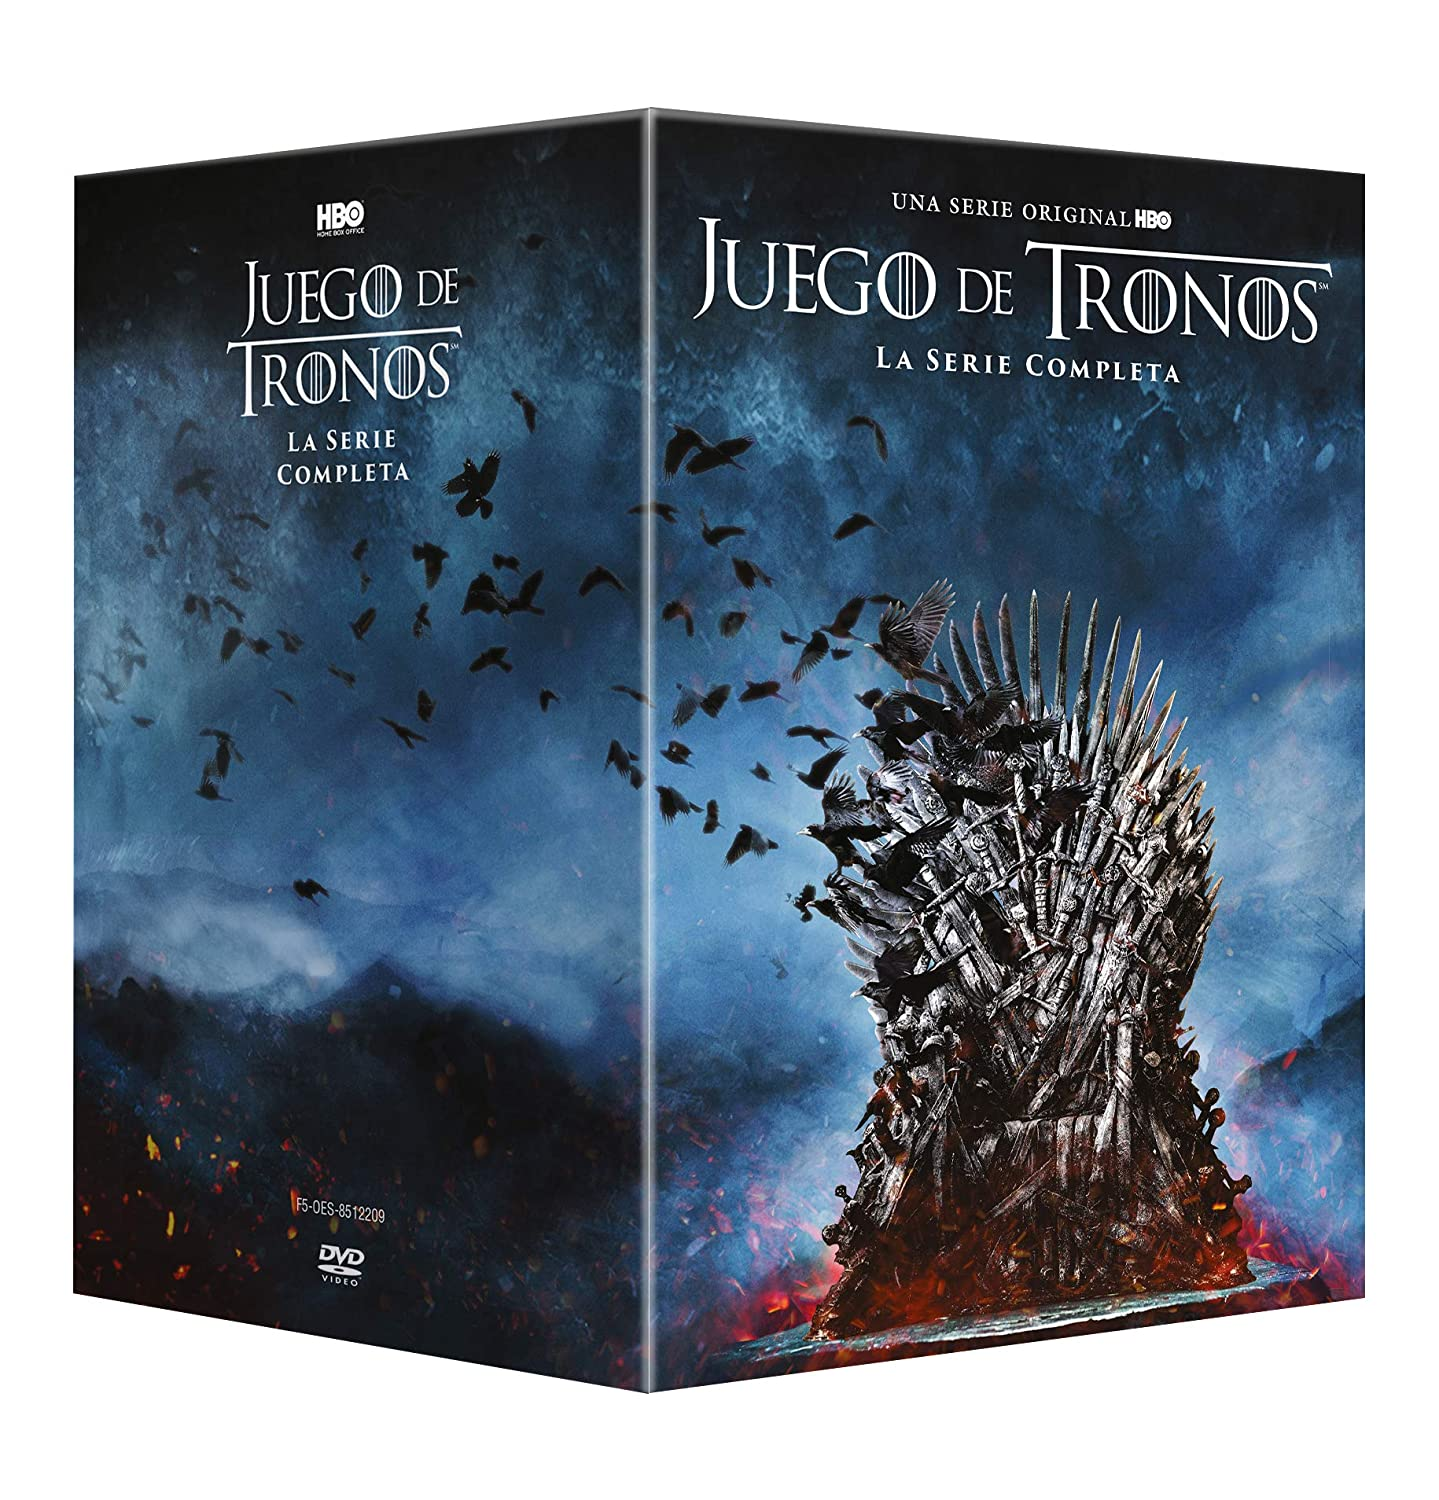 Juego De Tronos Temporada 1 8 Colección Completa Dvd Amazon Es Lena Headey Peter Dinklage Maisie Williams Emilia Clarke Kit Harington David Benioff Creator D B Weiss Creator Timothy Van Patten Brian Kirk Lena Headey